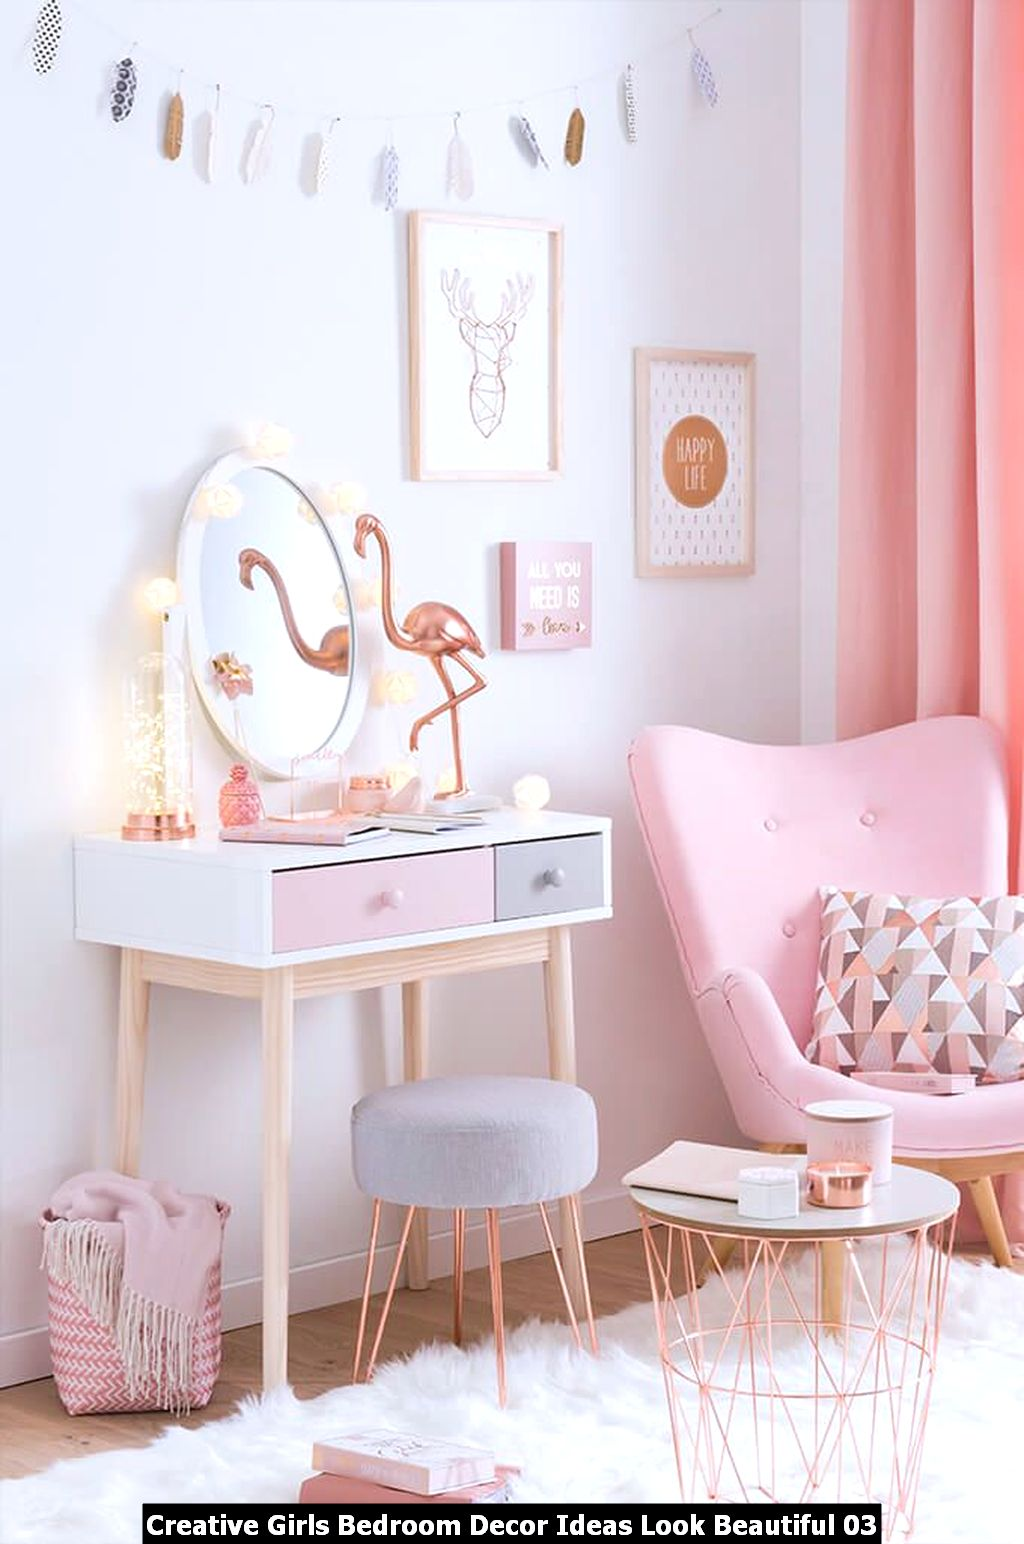 Creative Girls Bedroom Decor Ideas Look Beautiful 03